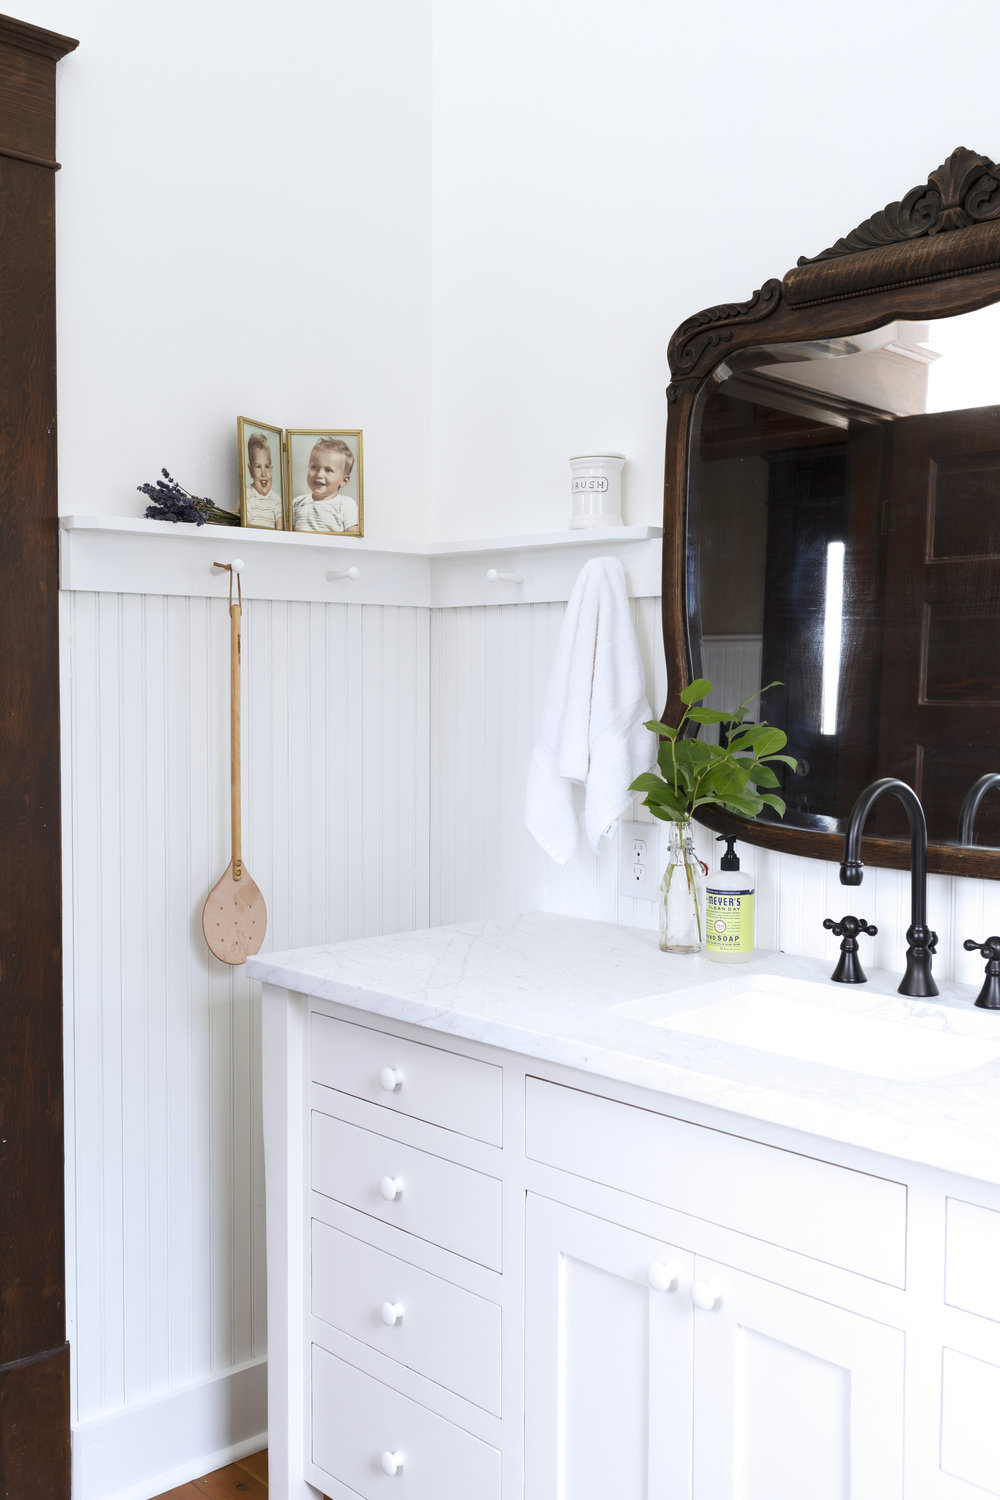 The Grit and Polish - Farmhouse Bathroom Budget Refresh Corner Baby Pic.jpg